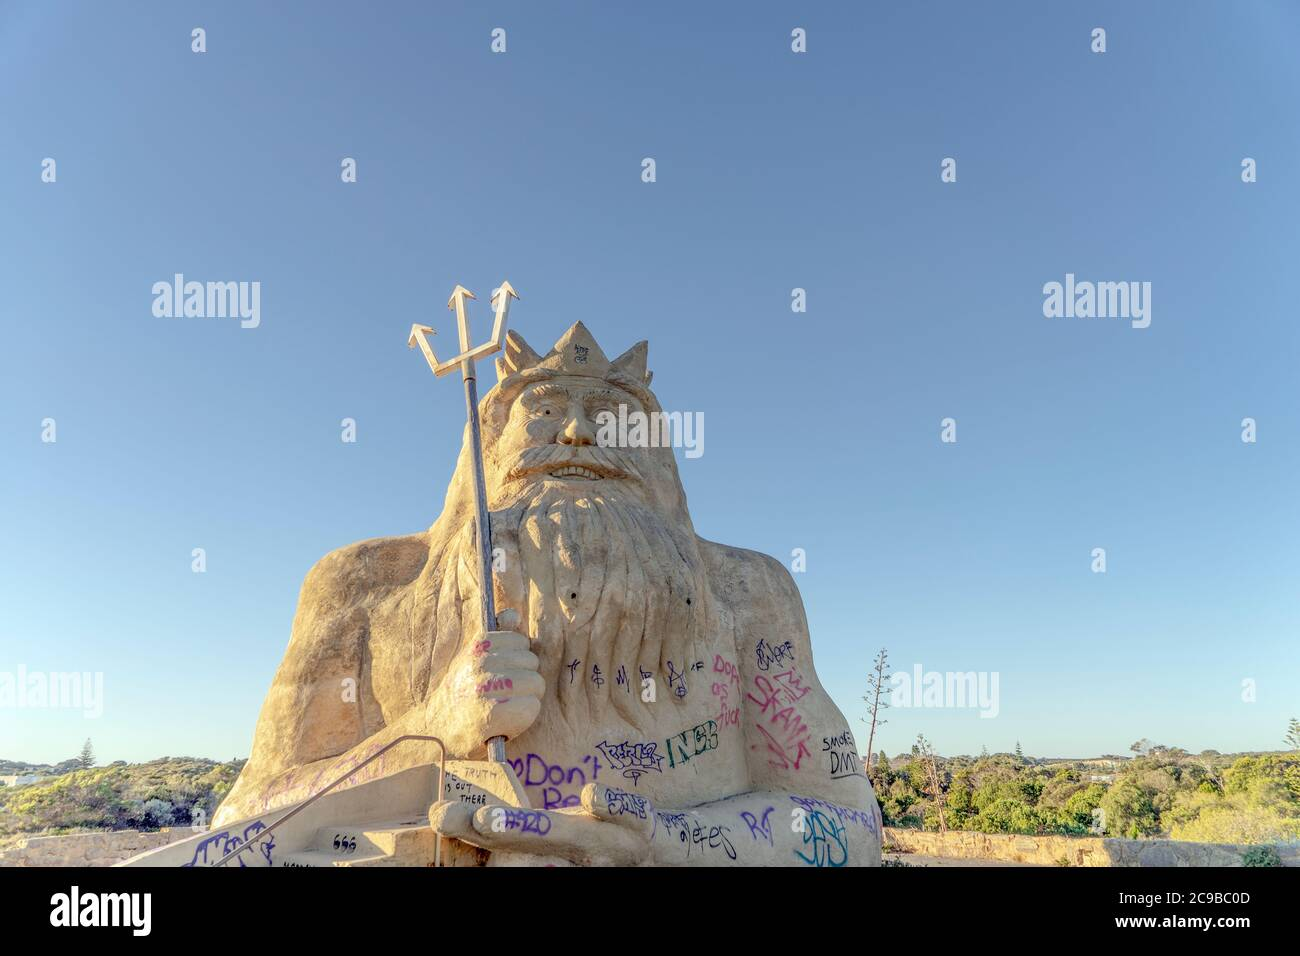 King Neptune Statue In Atlantis Marine Park In Two Rocks Western Australia Perth S Abandoned Theme Park Stock Photo Alamy